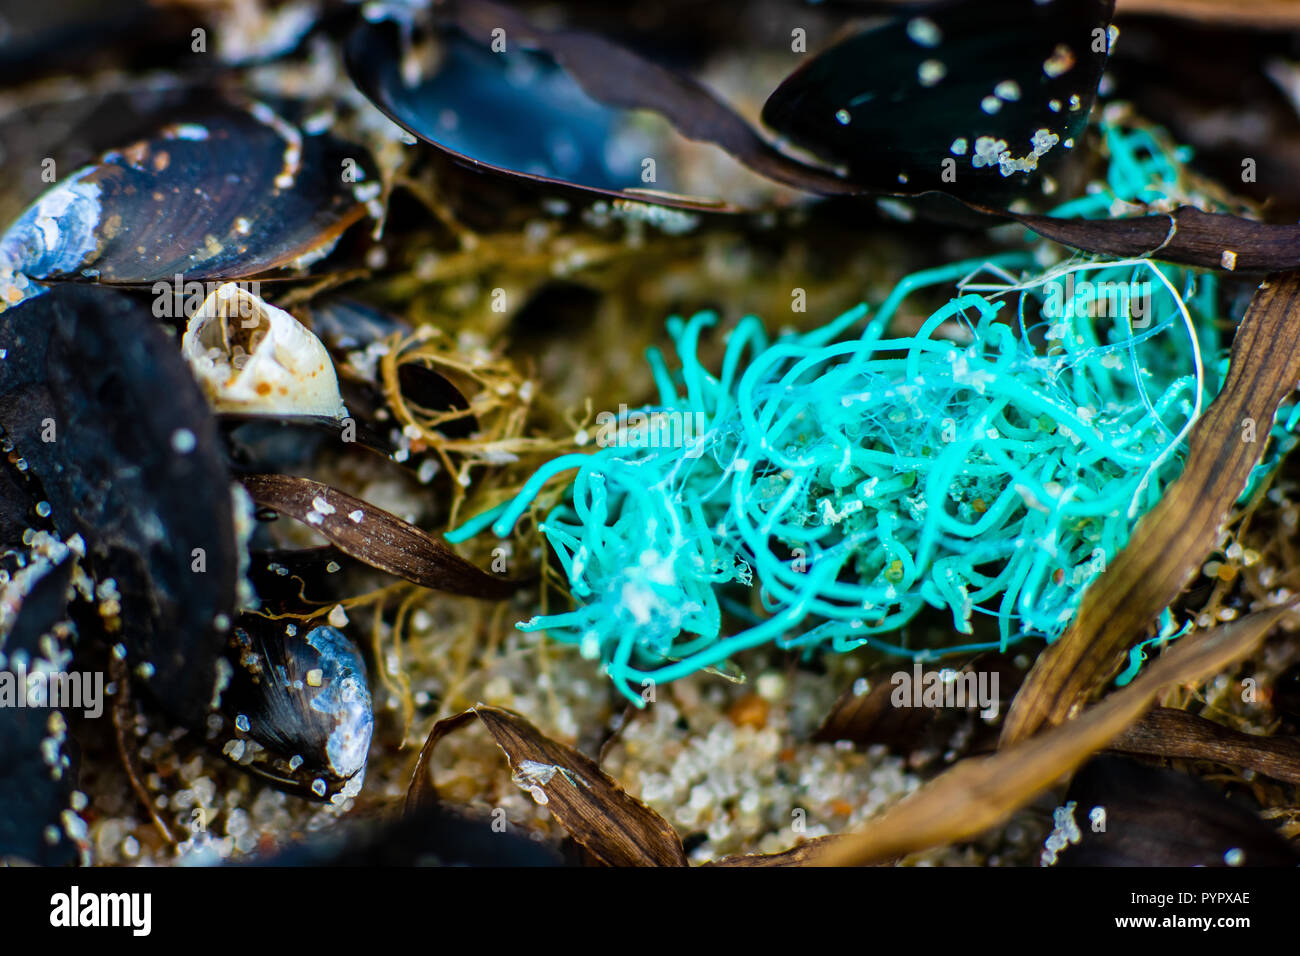 Macro close up of jetsam washed on a beach showing sea pollution with plastic nets - Stock Image